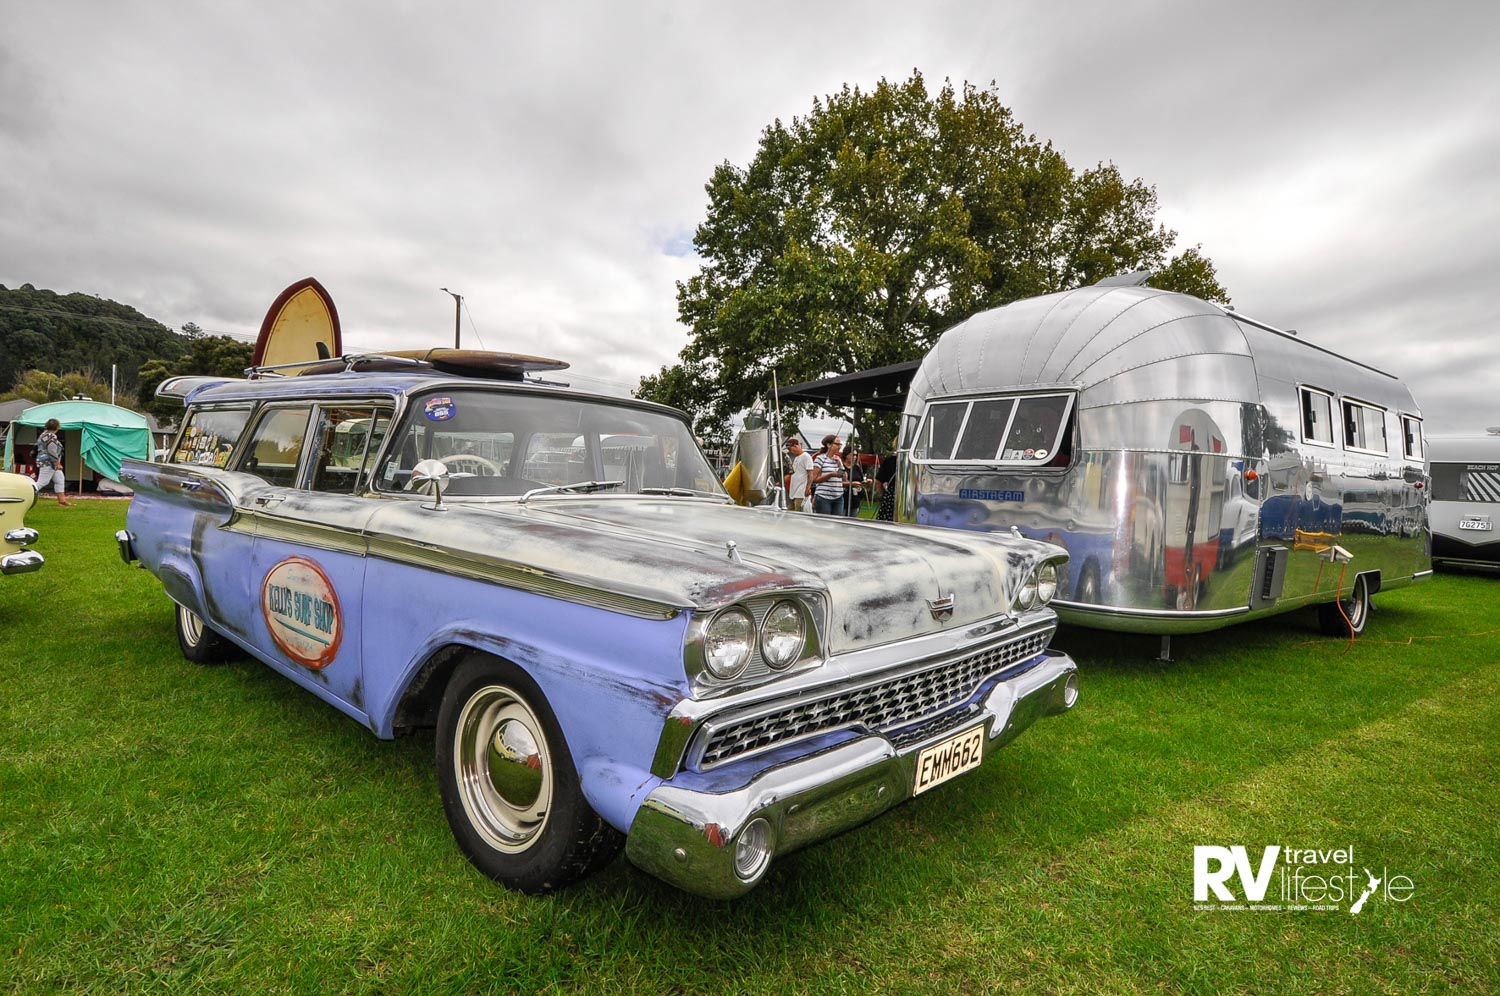 1959 Ford Country Sedan tow car with 1954 Airstream Flying Cloud